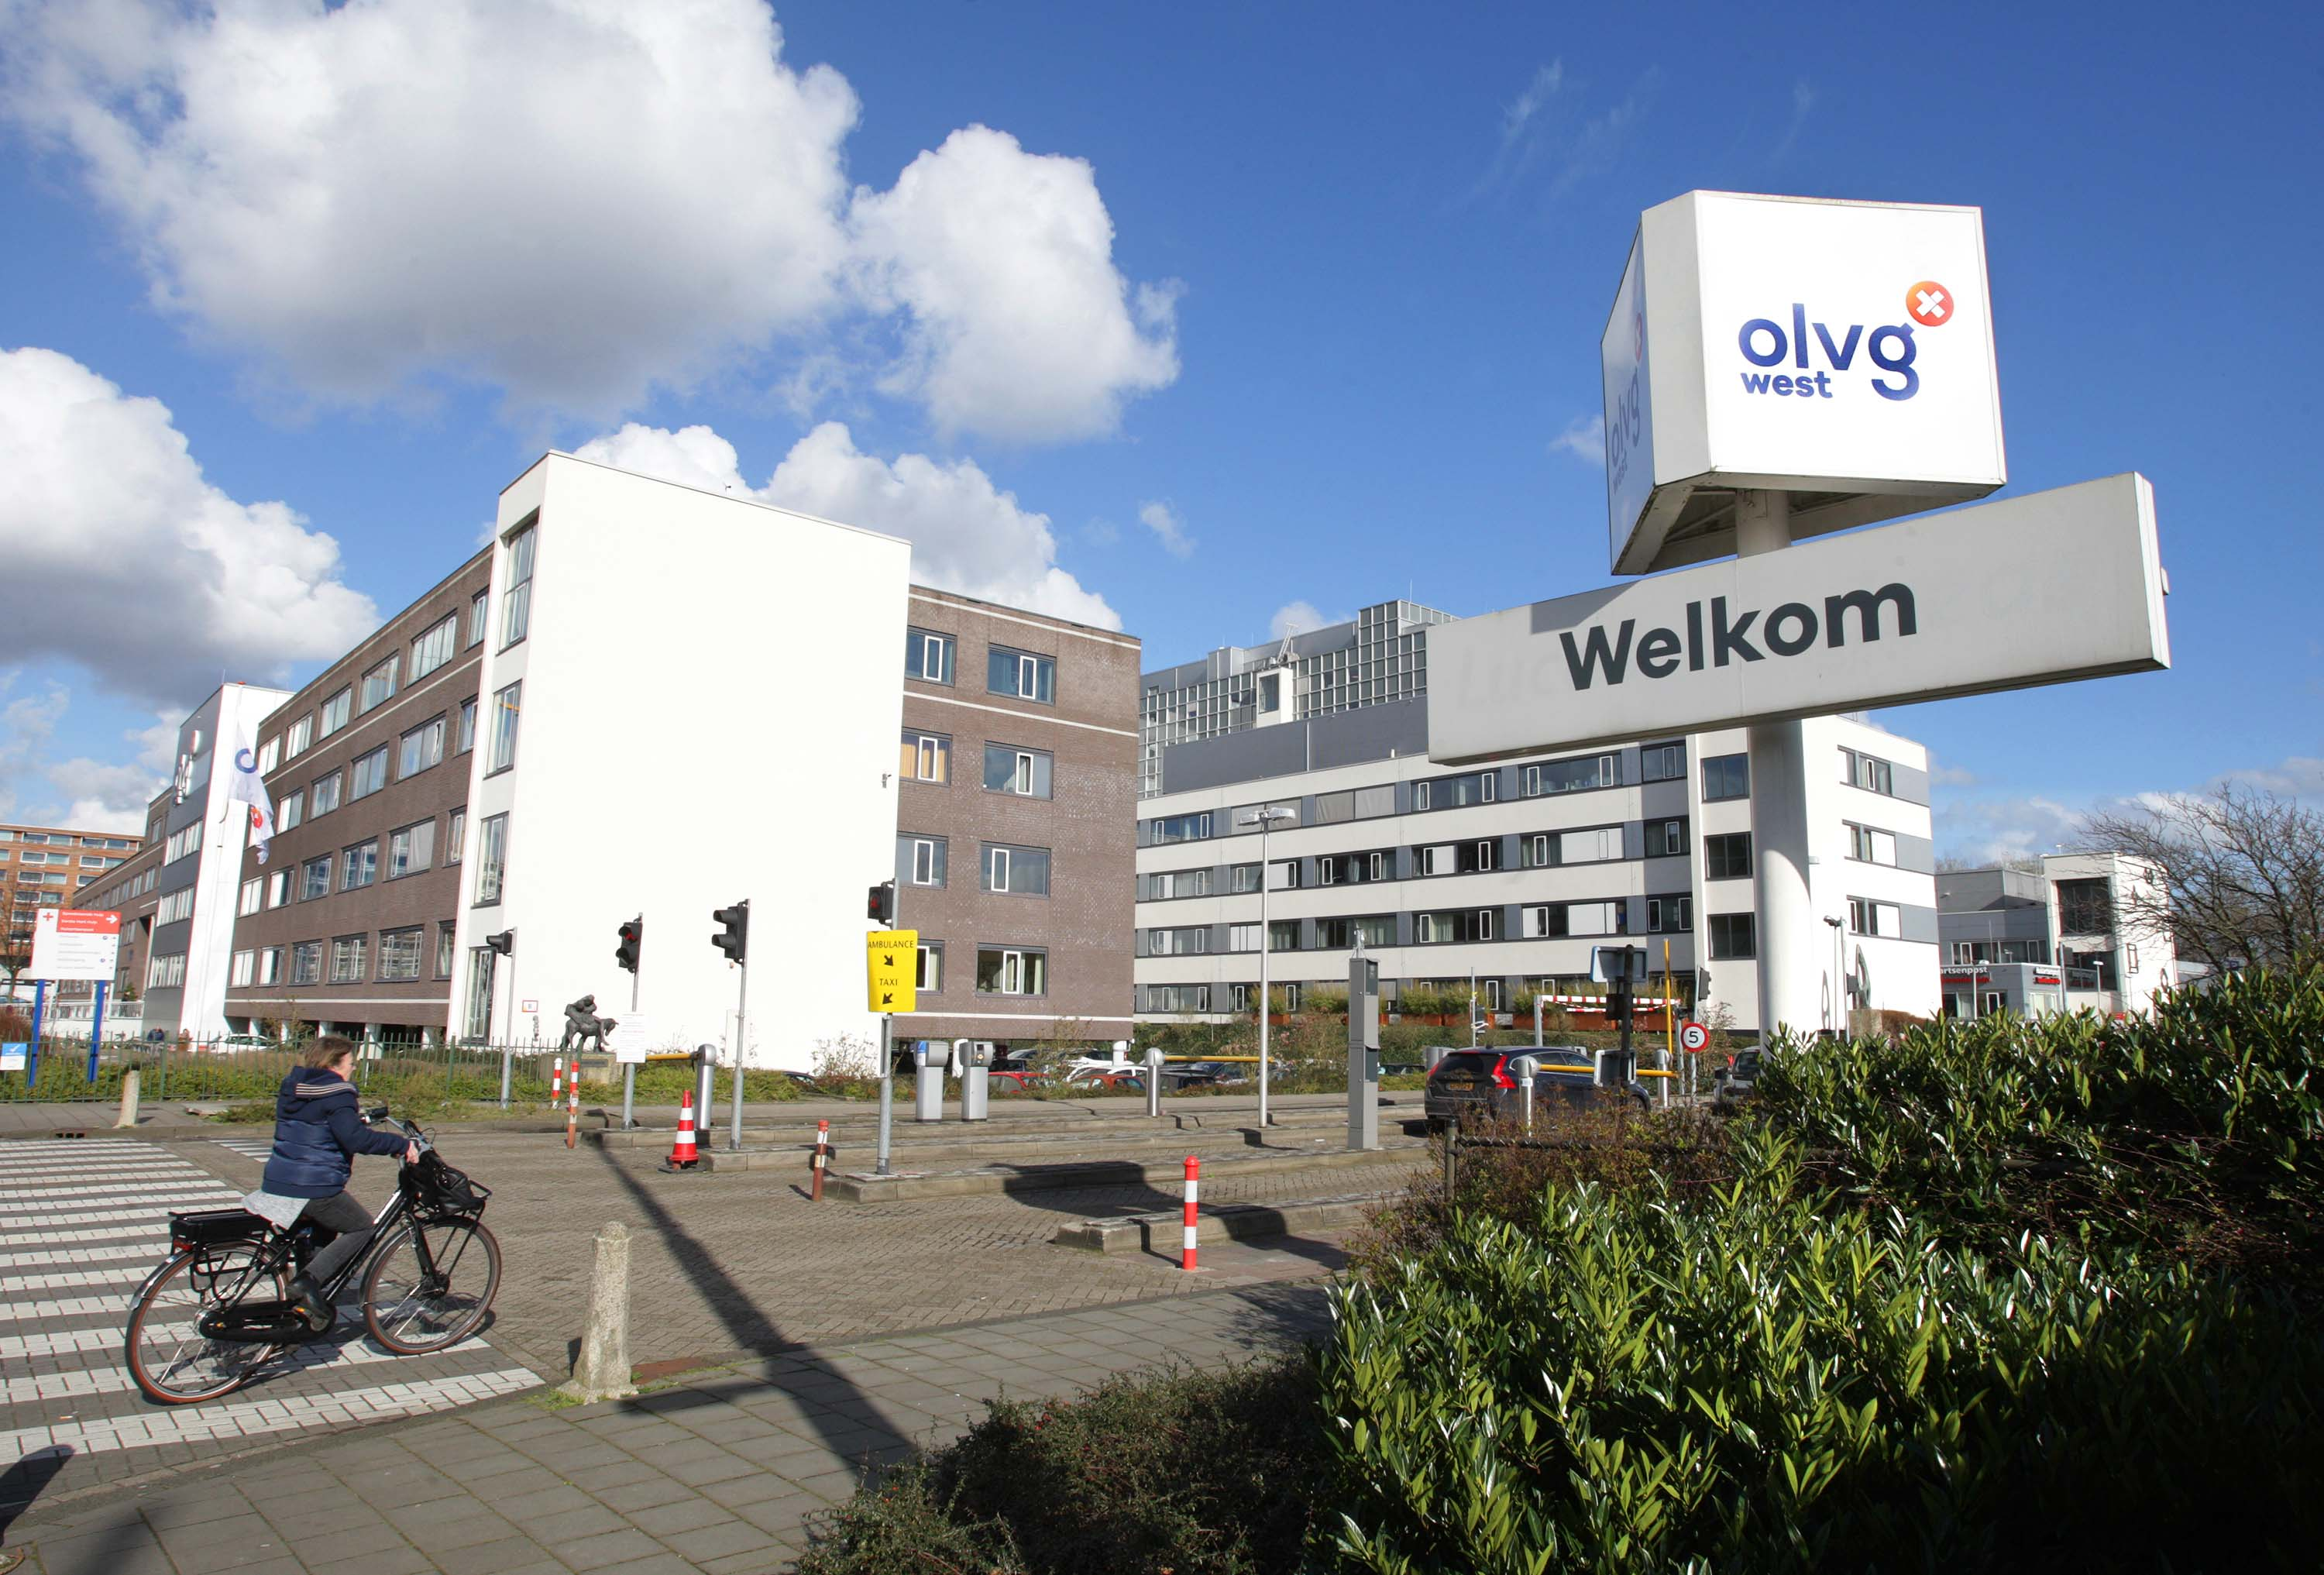 The Onze Lieve Vrouwe Gasthuis (OLVG) Hospital is seen in Amsterdam, Netherlands on Wednesday. Two outpatient clinics of the Amsterdam hospital have been closed after an employee was found to be infected with the coronavirus.